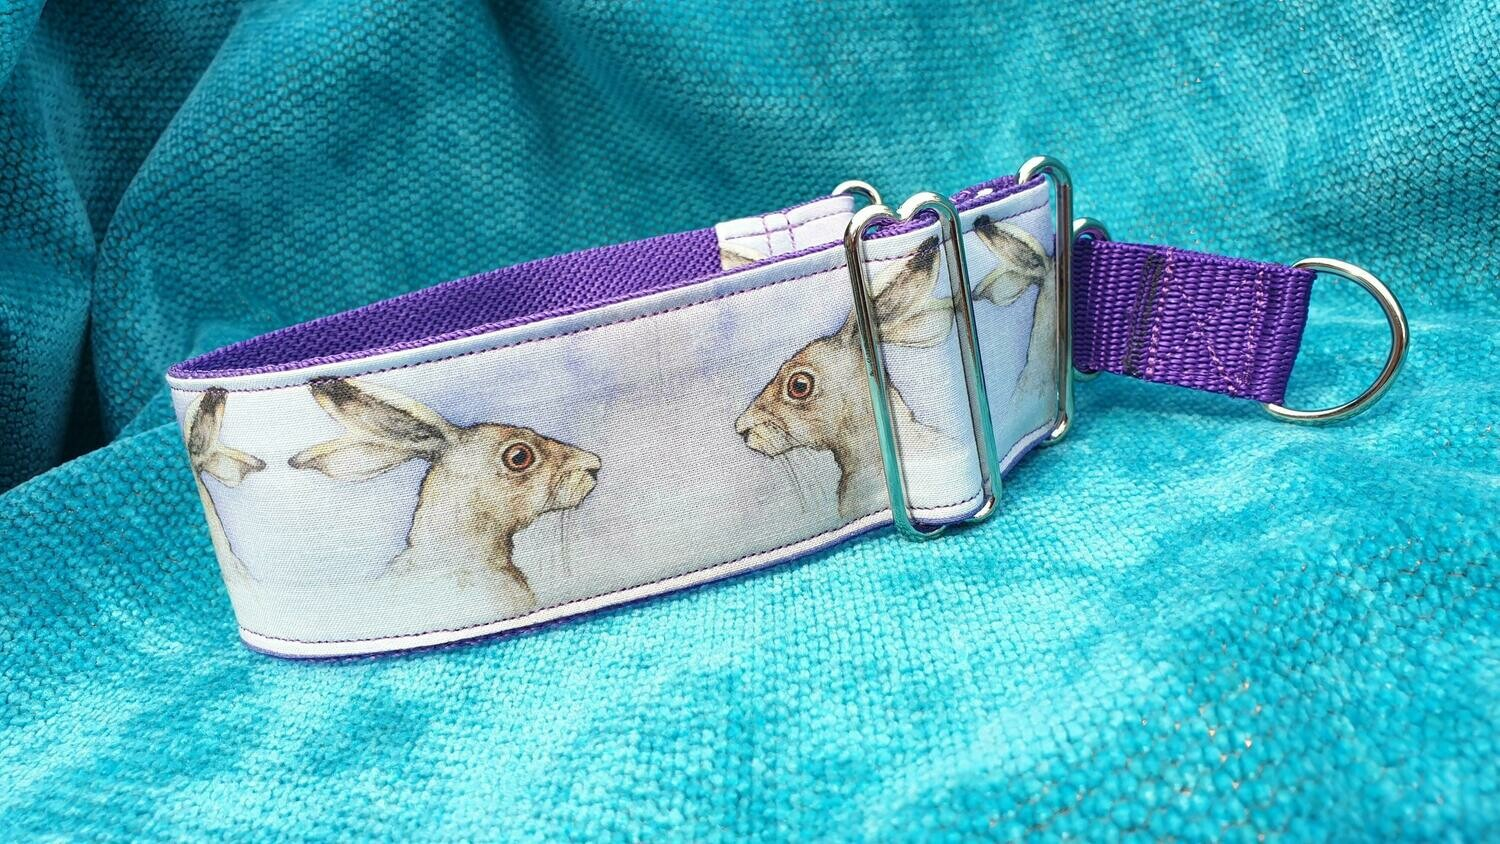 Collar 'Hares' by Erica Keating